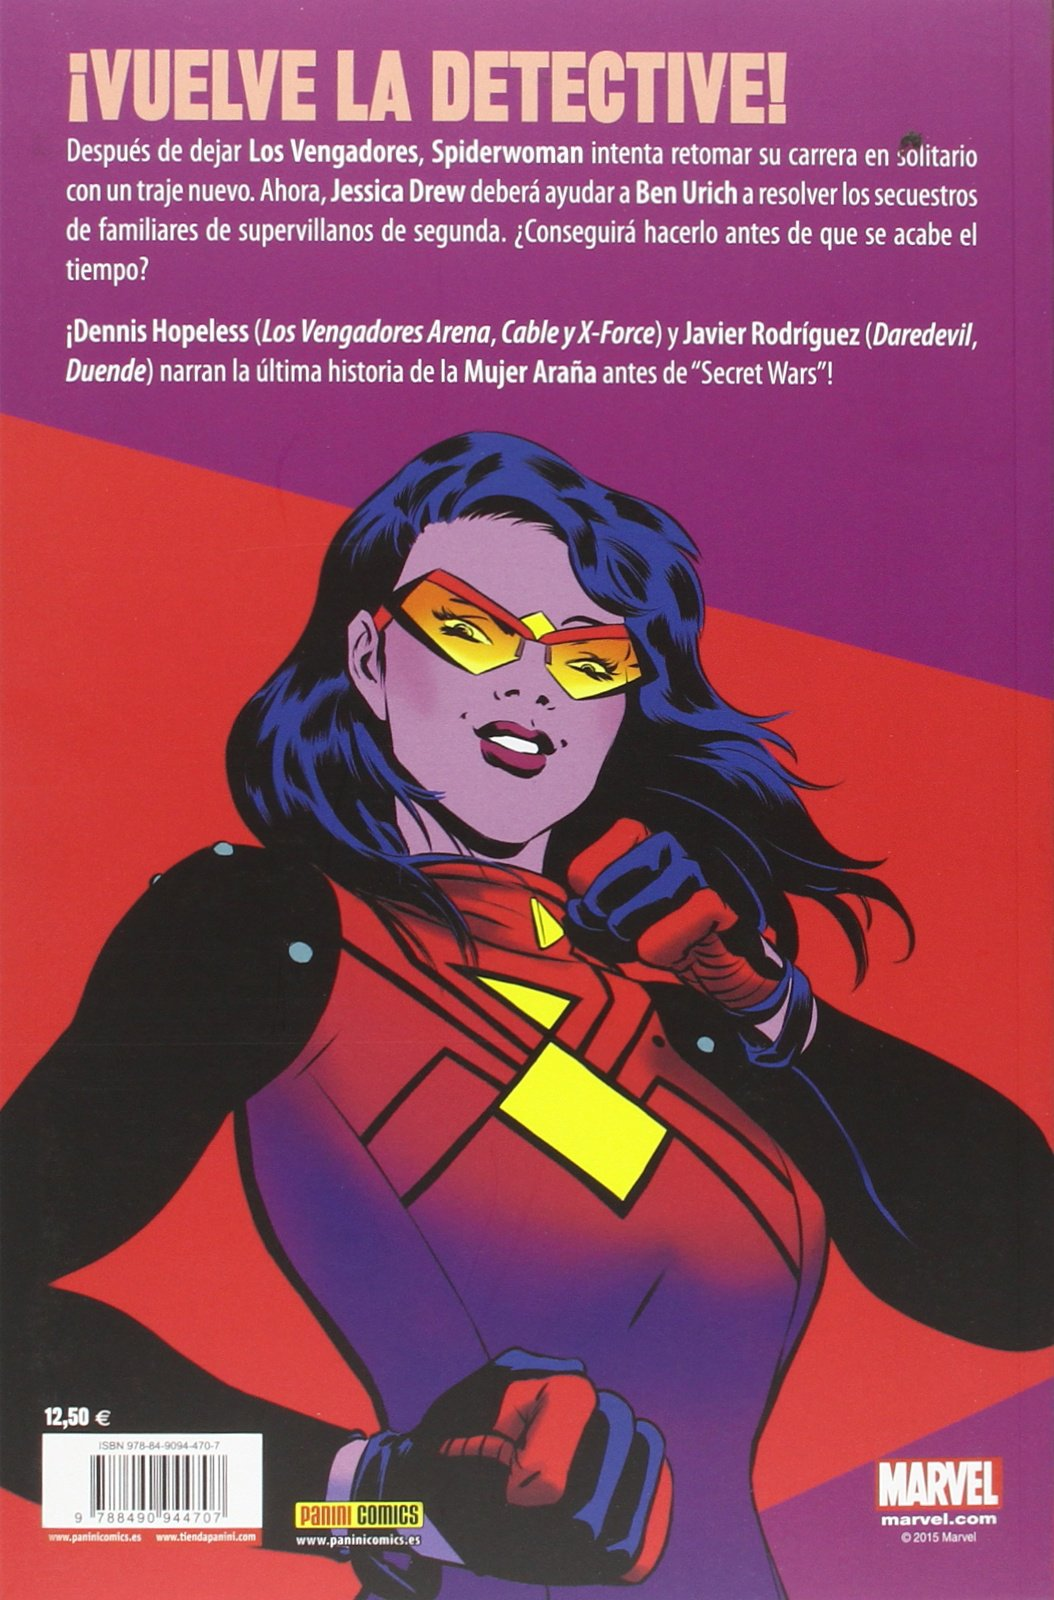 Spiderwoman 2. Trapos Nuevos: Amazon.es: Denis Hopeless: Libros